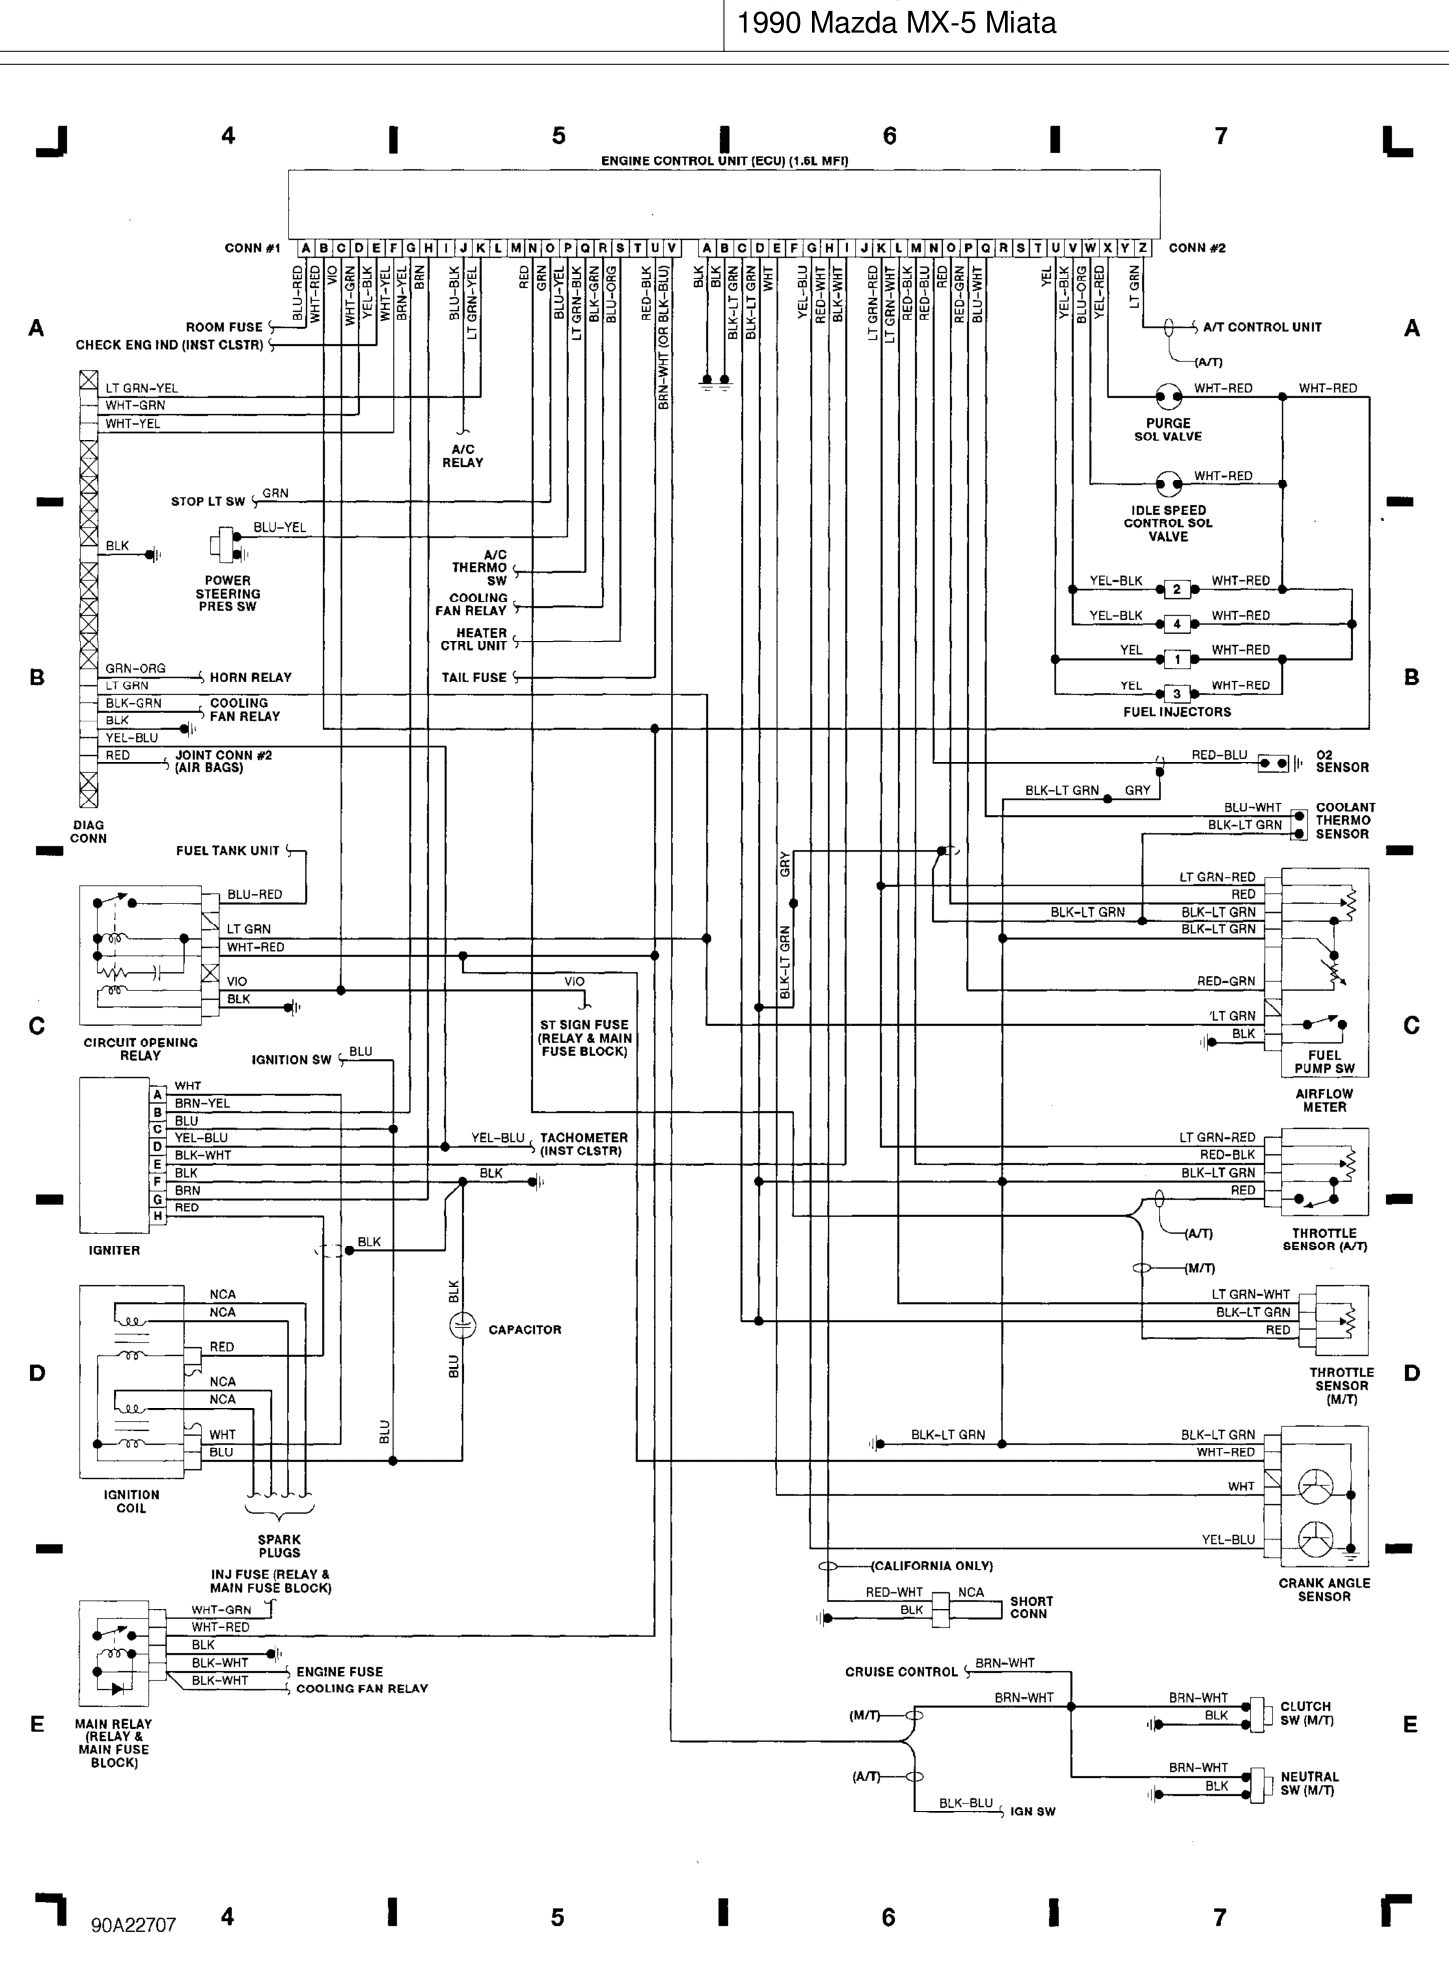 Service manual [1995 Mazda Mx 3 Fuse Box Diagram Pdf